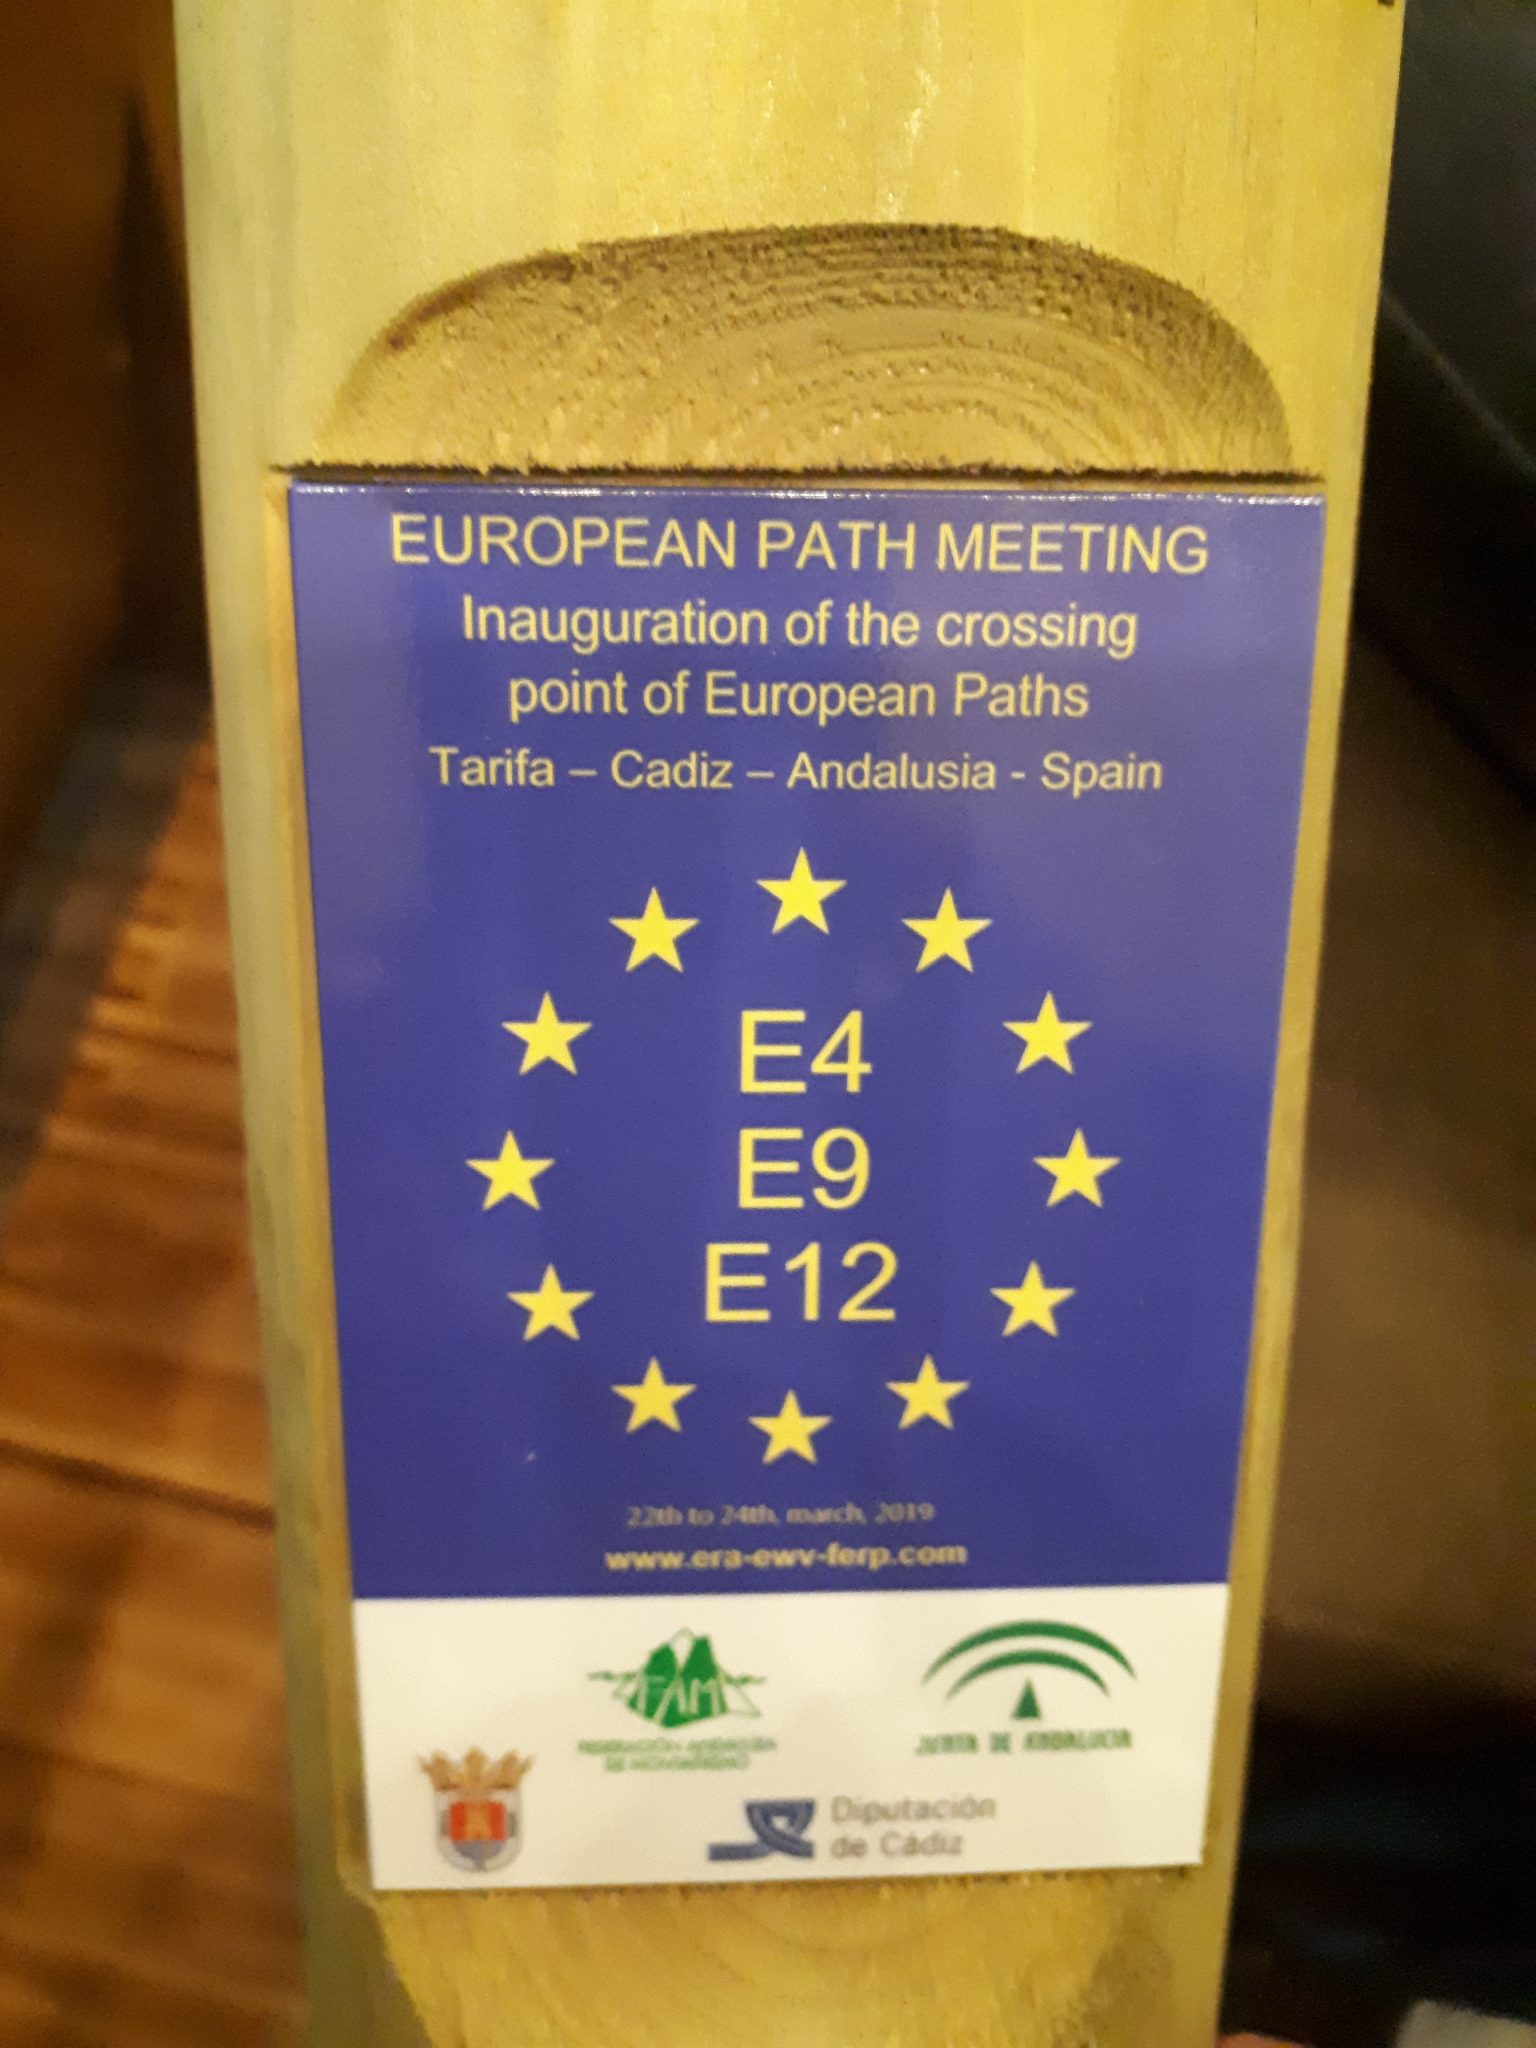 E-path event in Tarifa, Spain